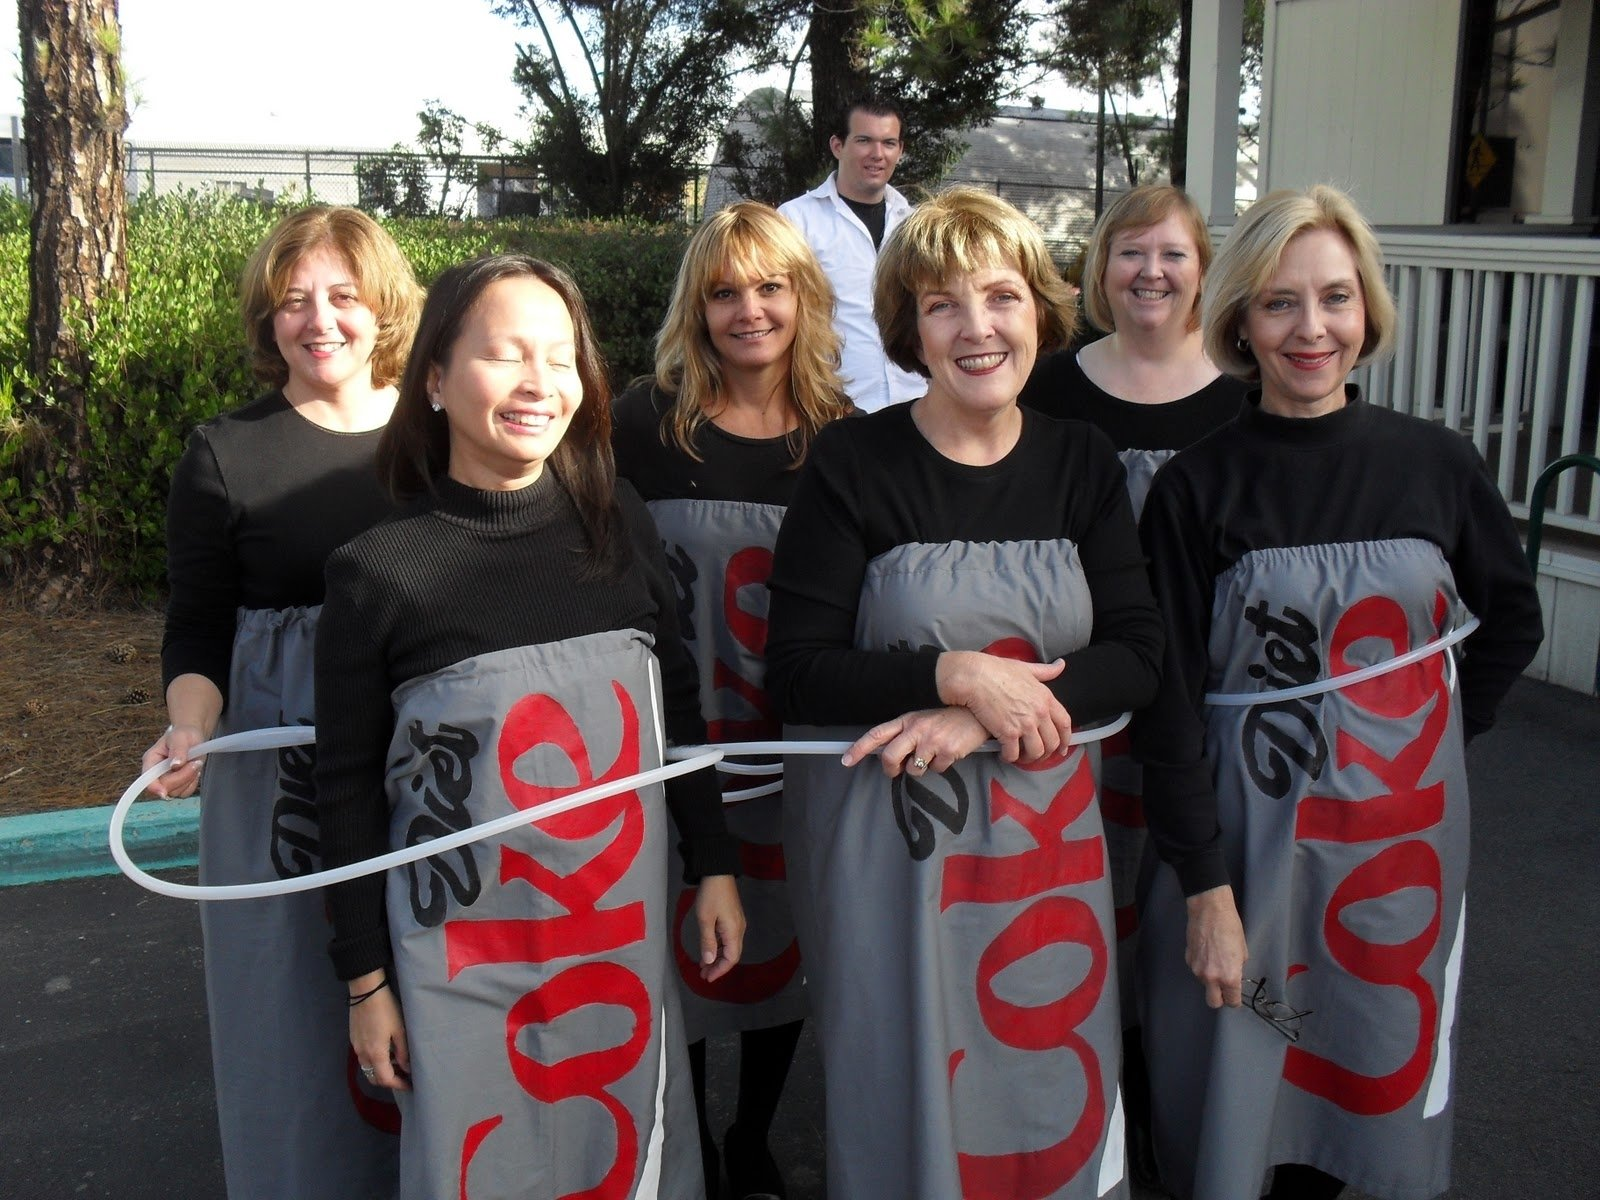 10 Fantastic Halloween Costume Ideas For Three People stamp til dawn halloween costumes 2021